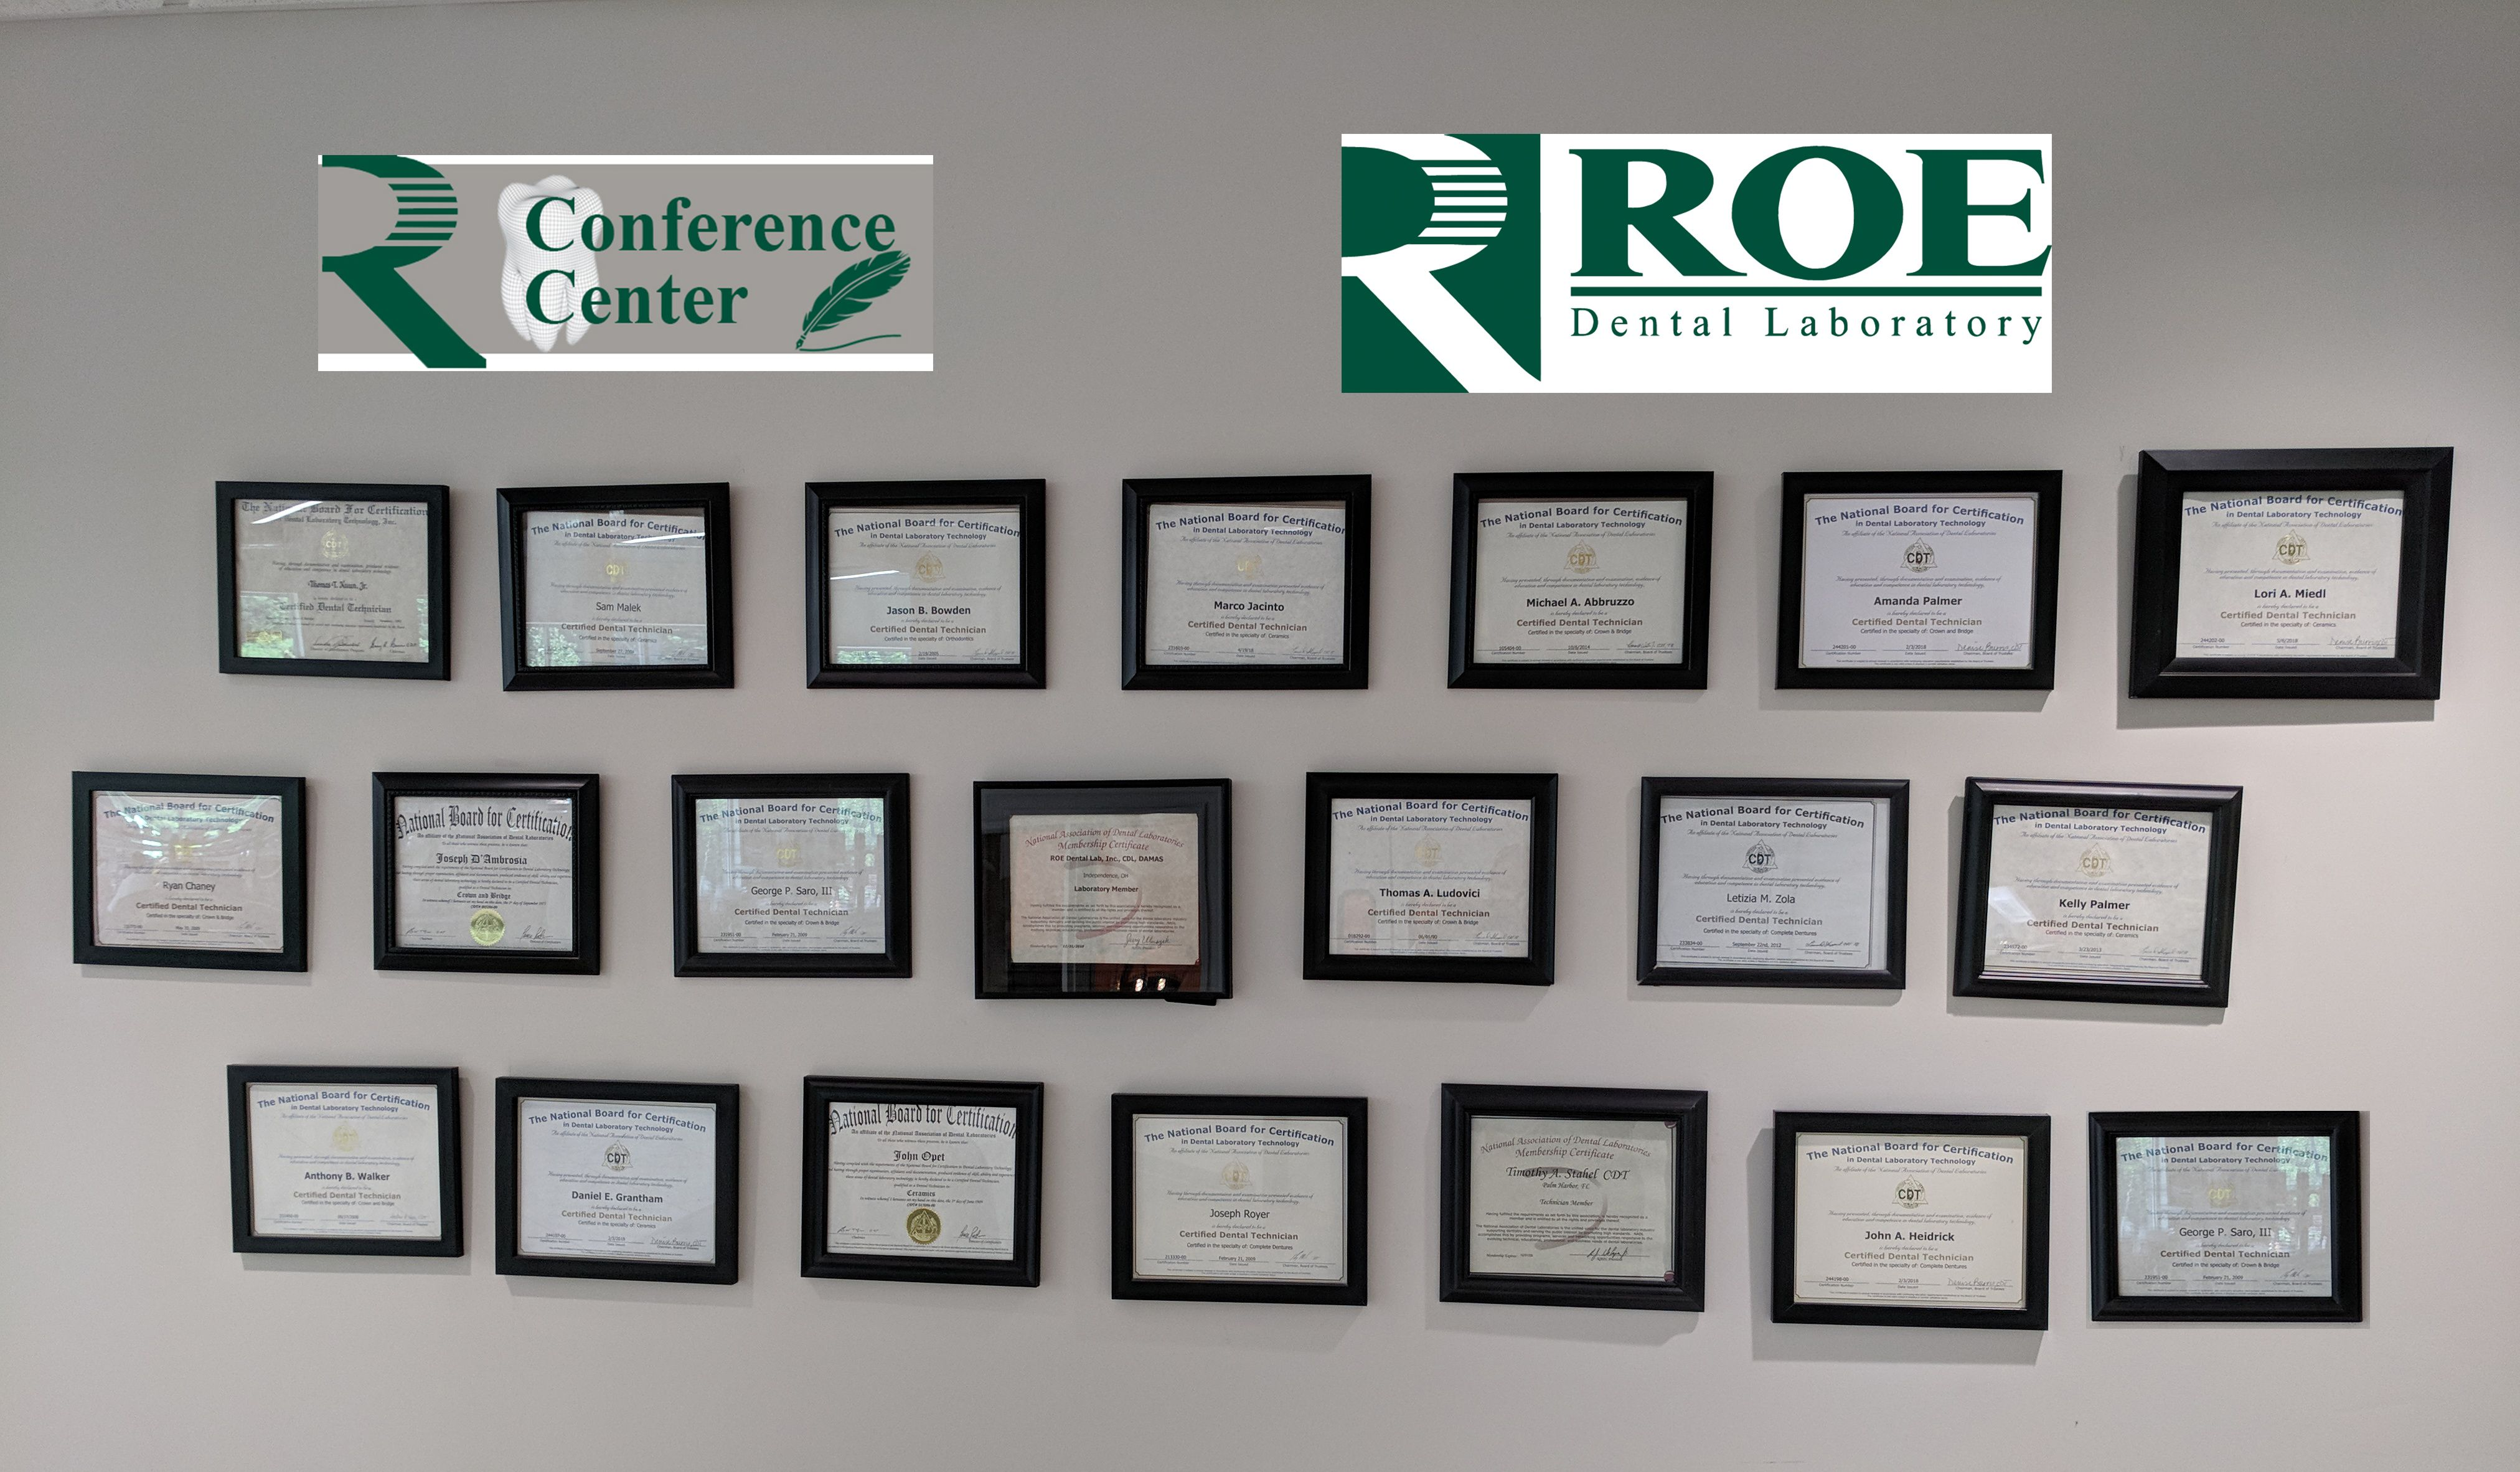 Roe Dental Laboratory Cdt Wall 21 Cdts And Growing Guidedsmile